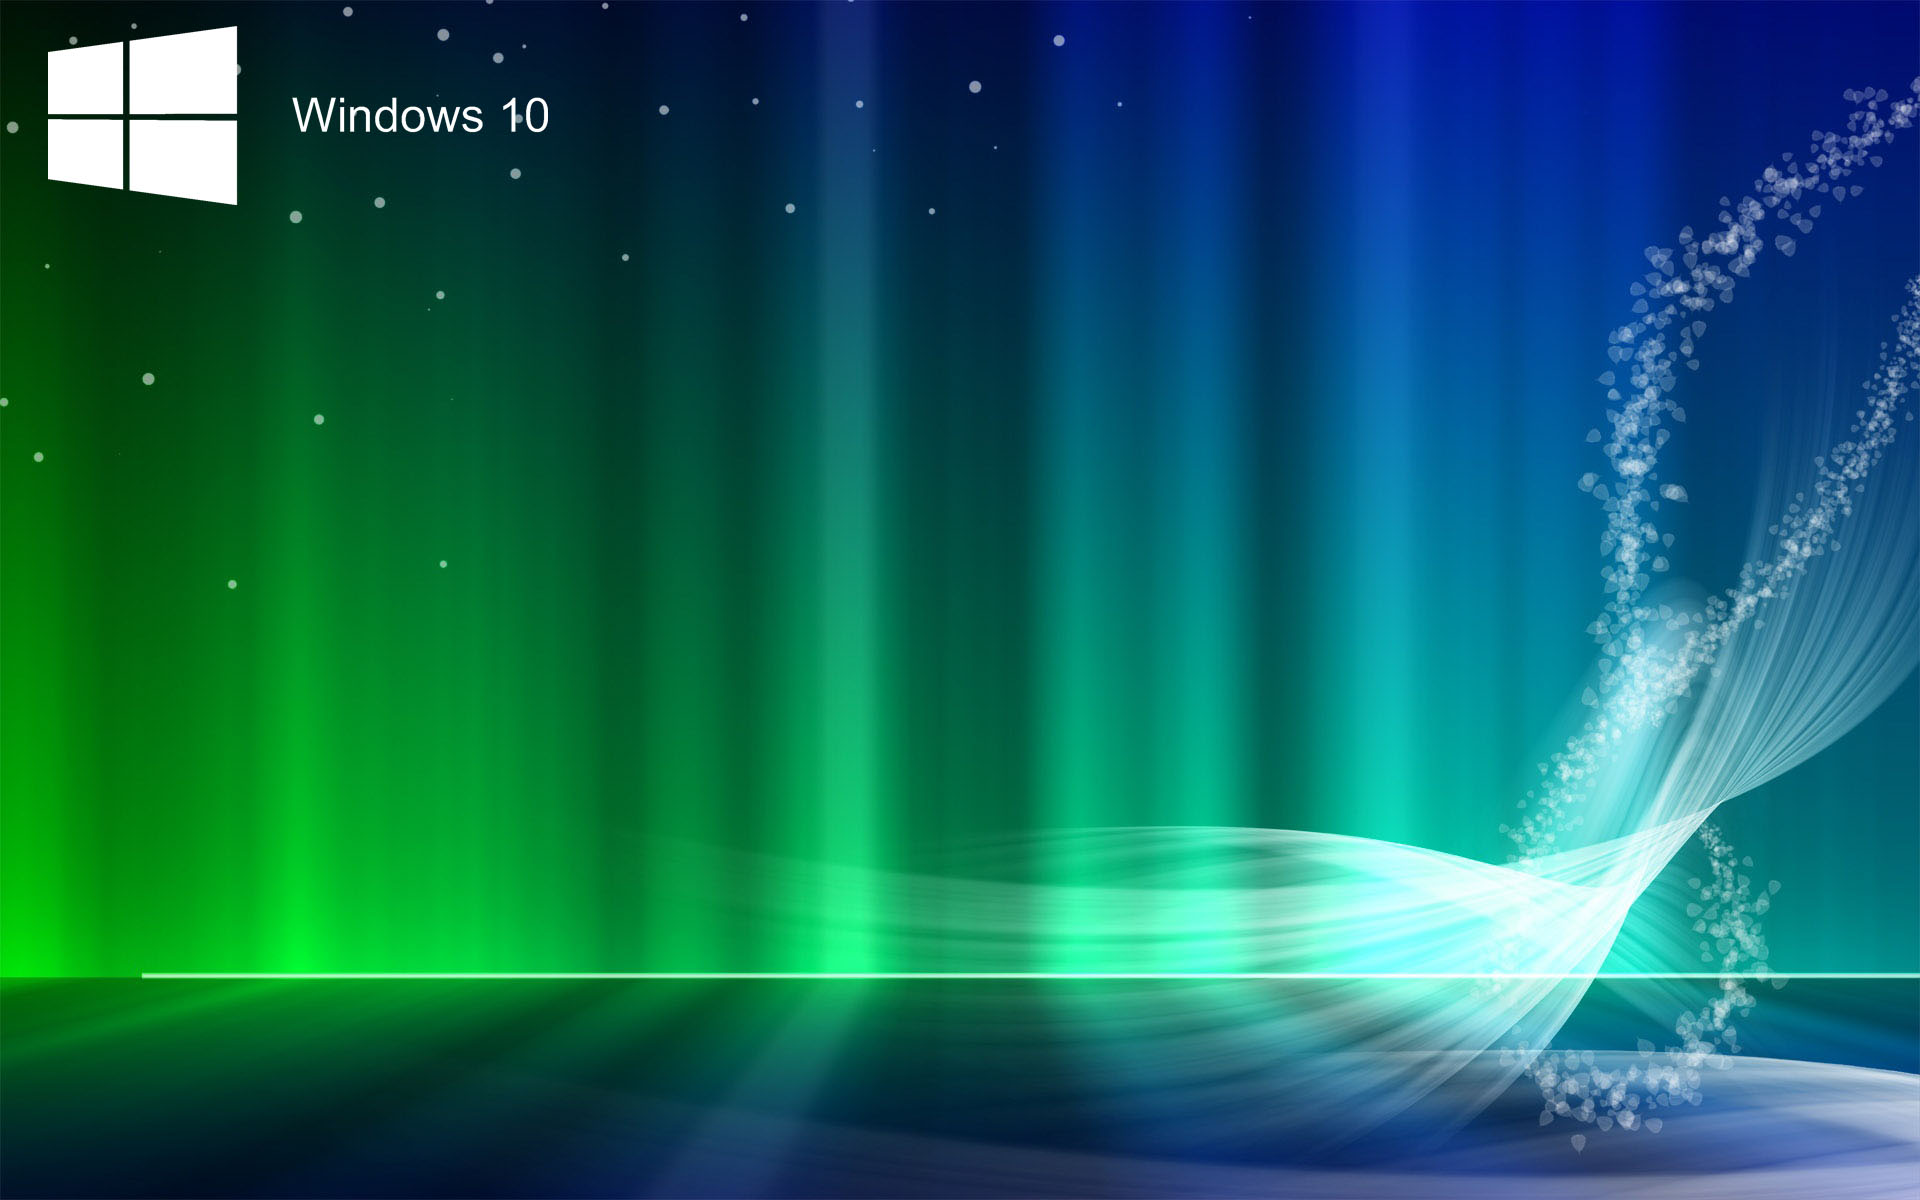 Windows 10 Wallpaper Download for Laptop Backgrounds HD Wallpapers 1920x1200